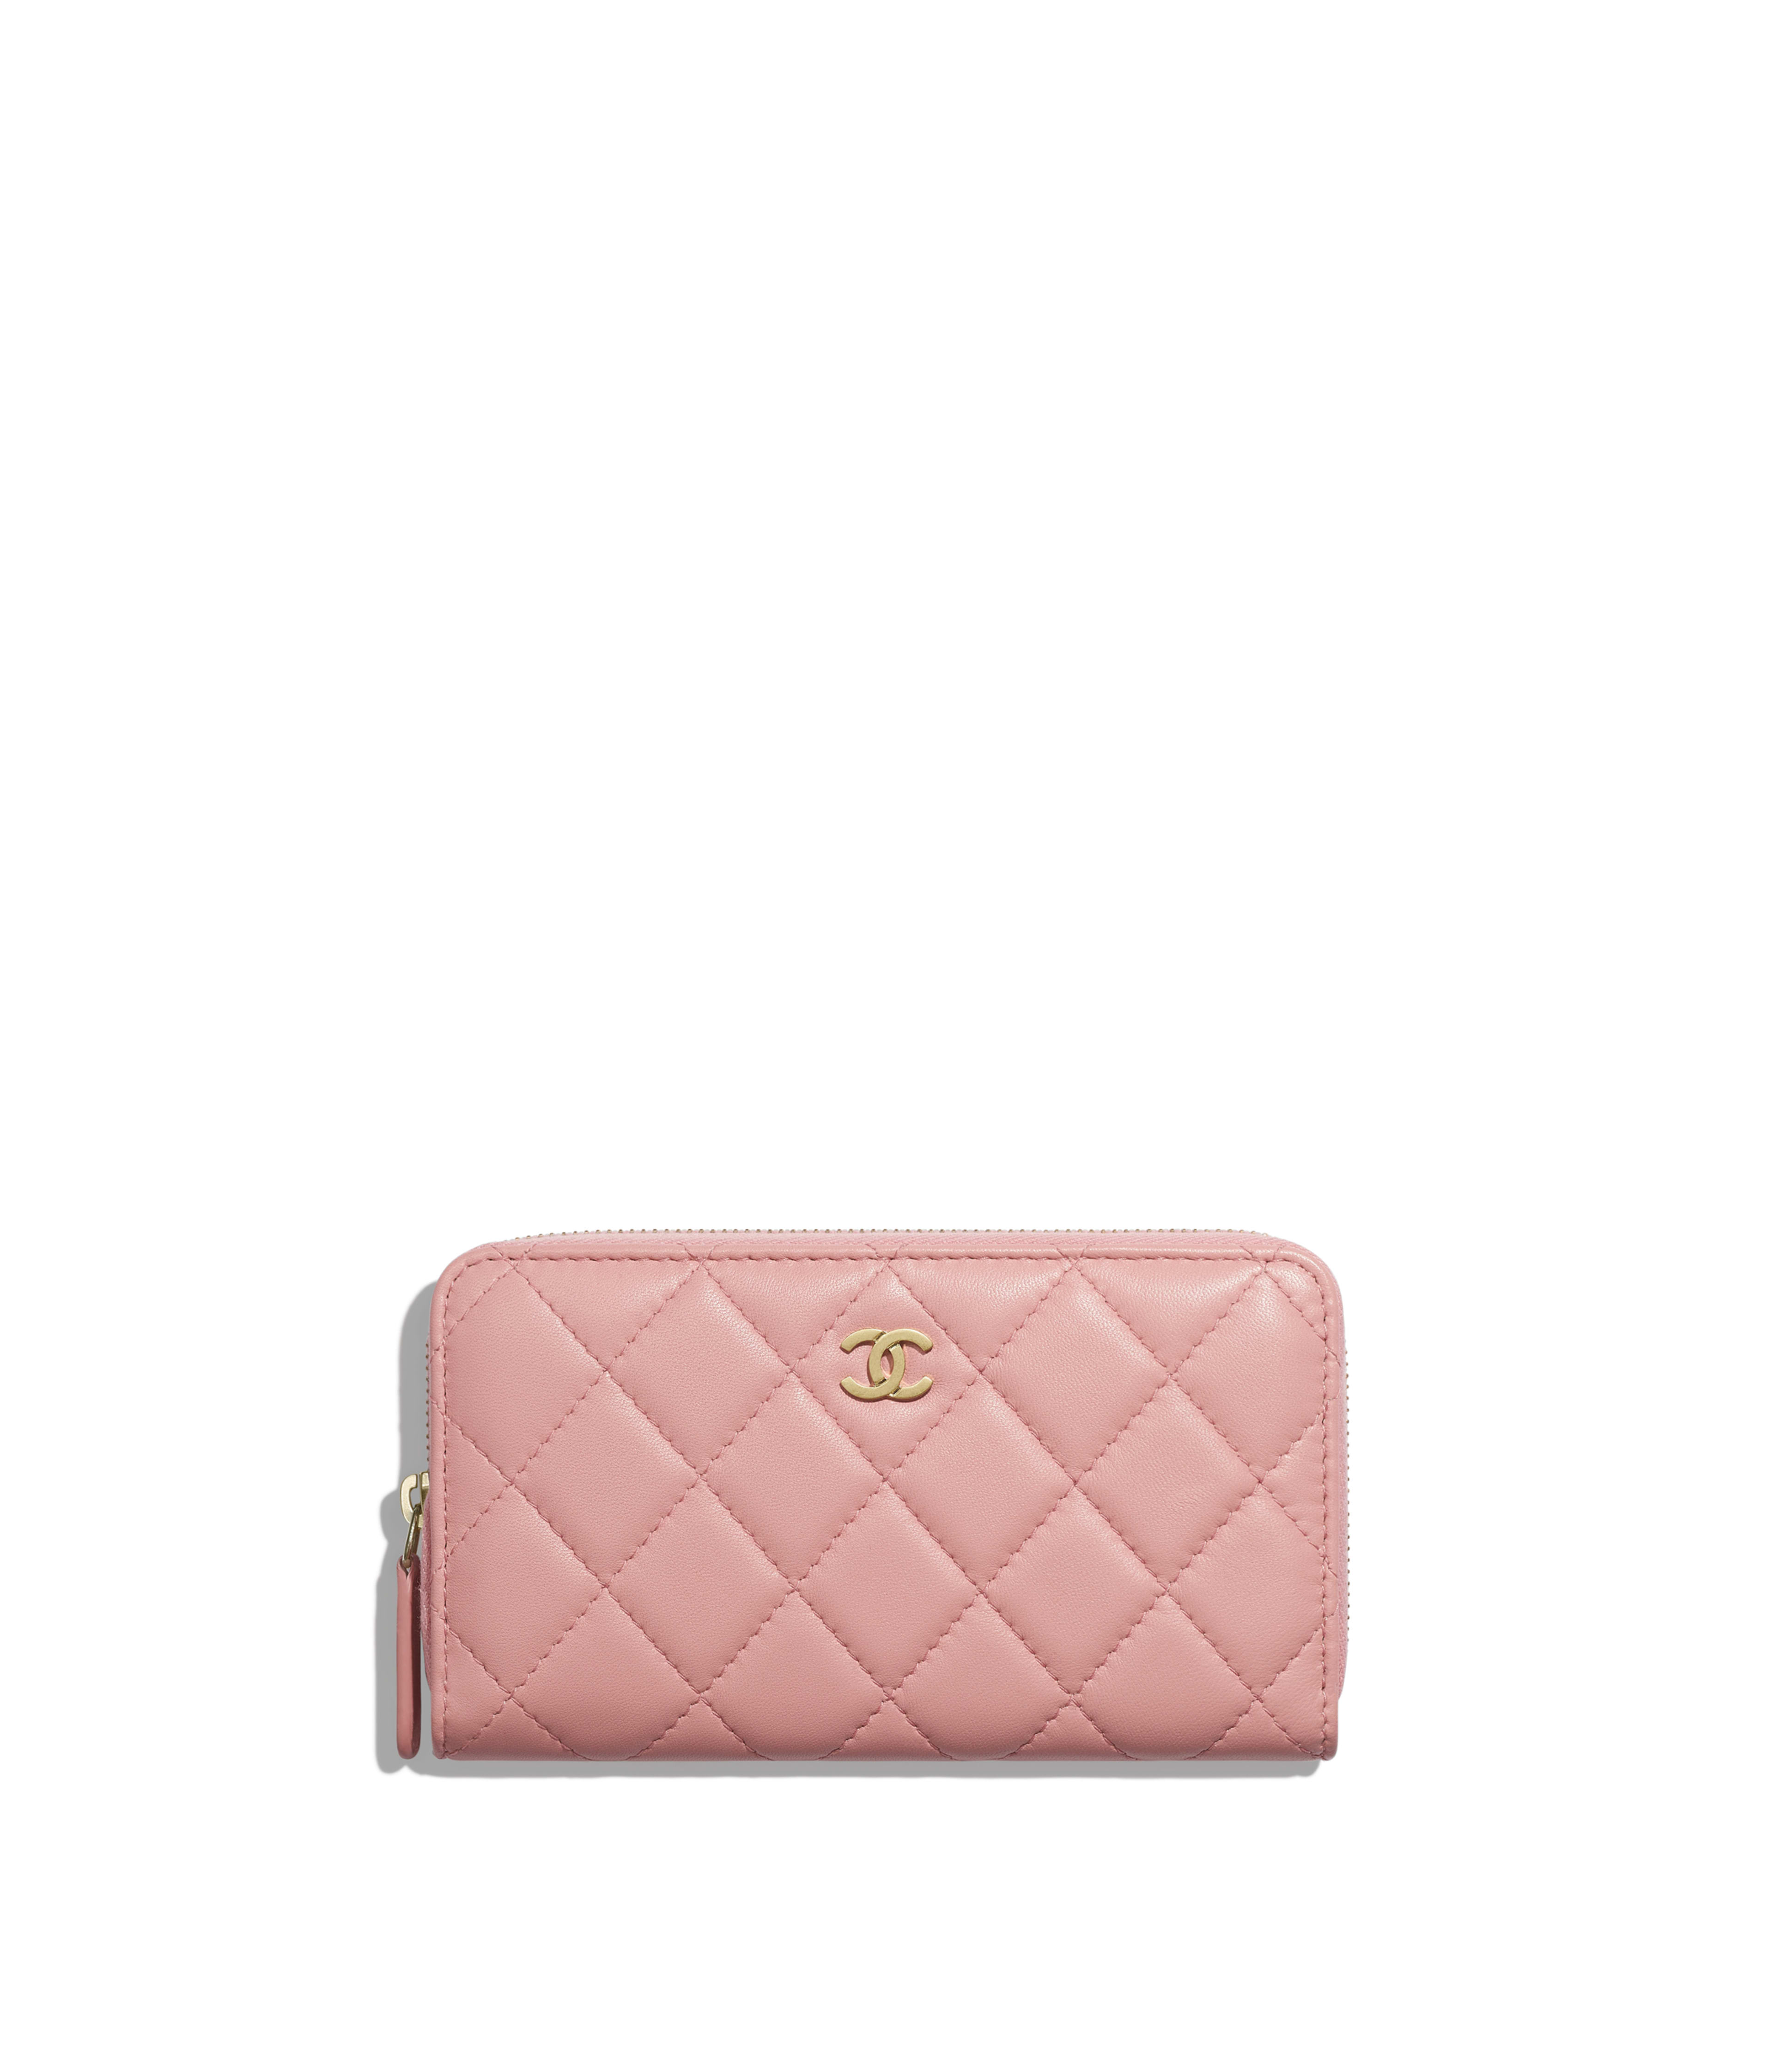 4c1a6ffb5a03a3 Classic Zipped Wallet Lambskin & Gold-Tone Metal, Pink Ref.  A80481Y07659N0897